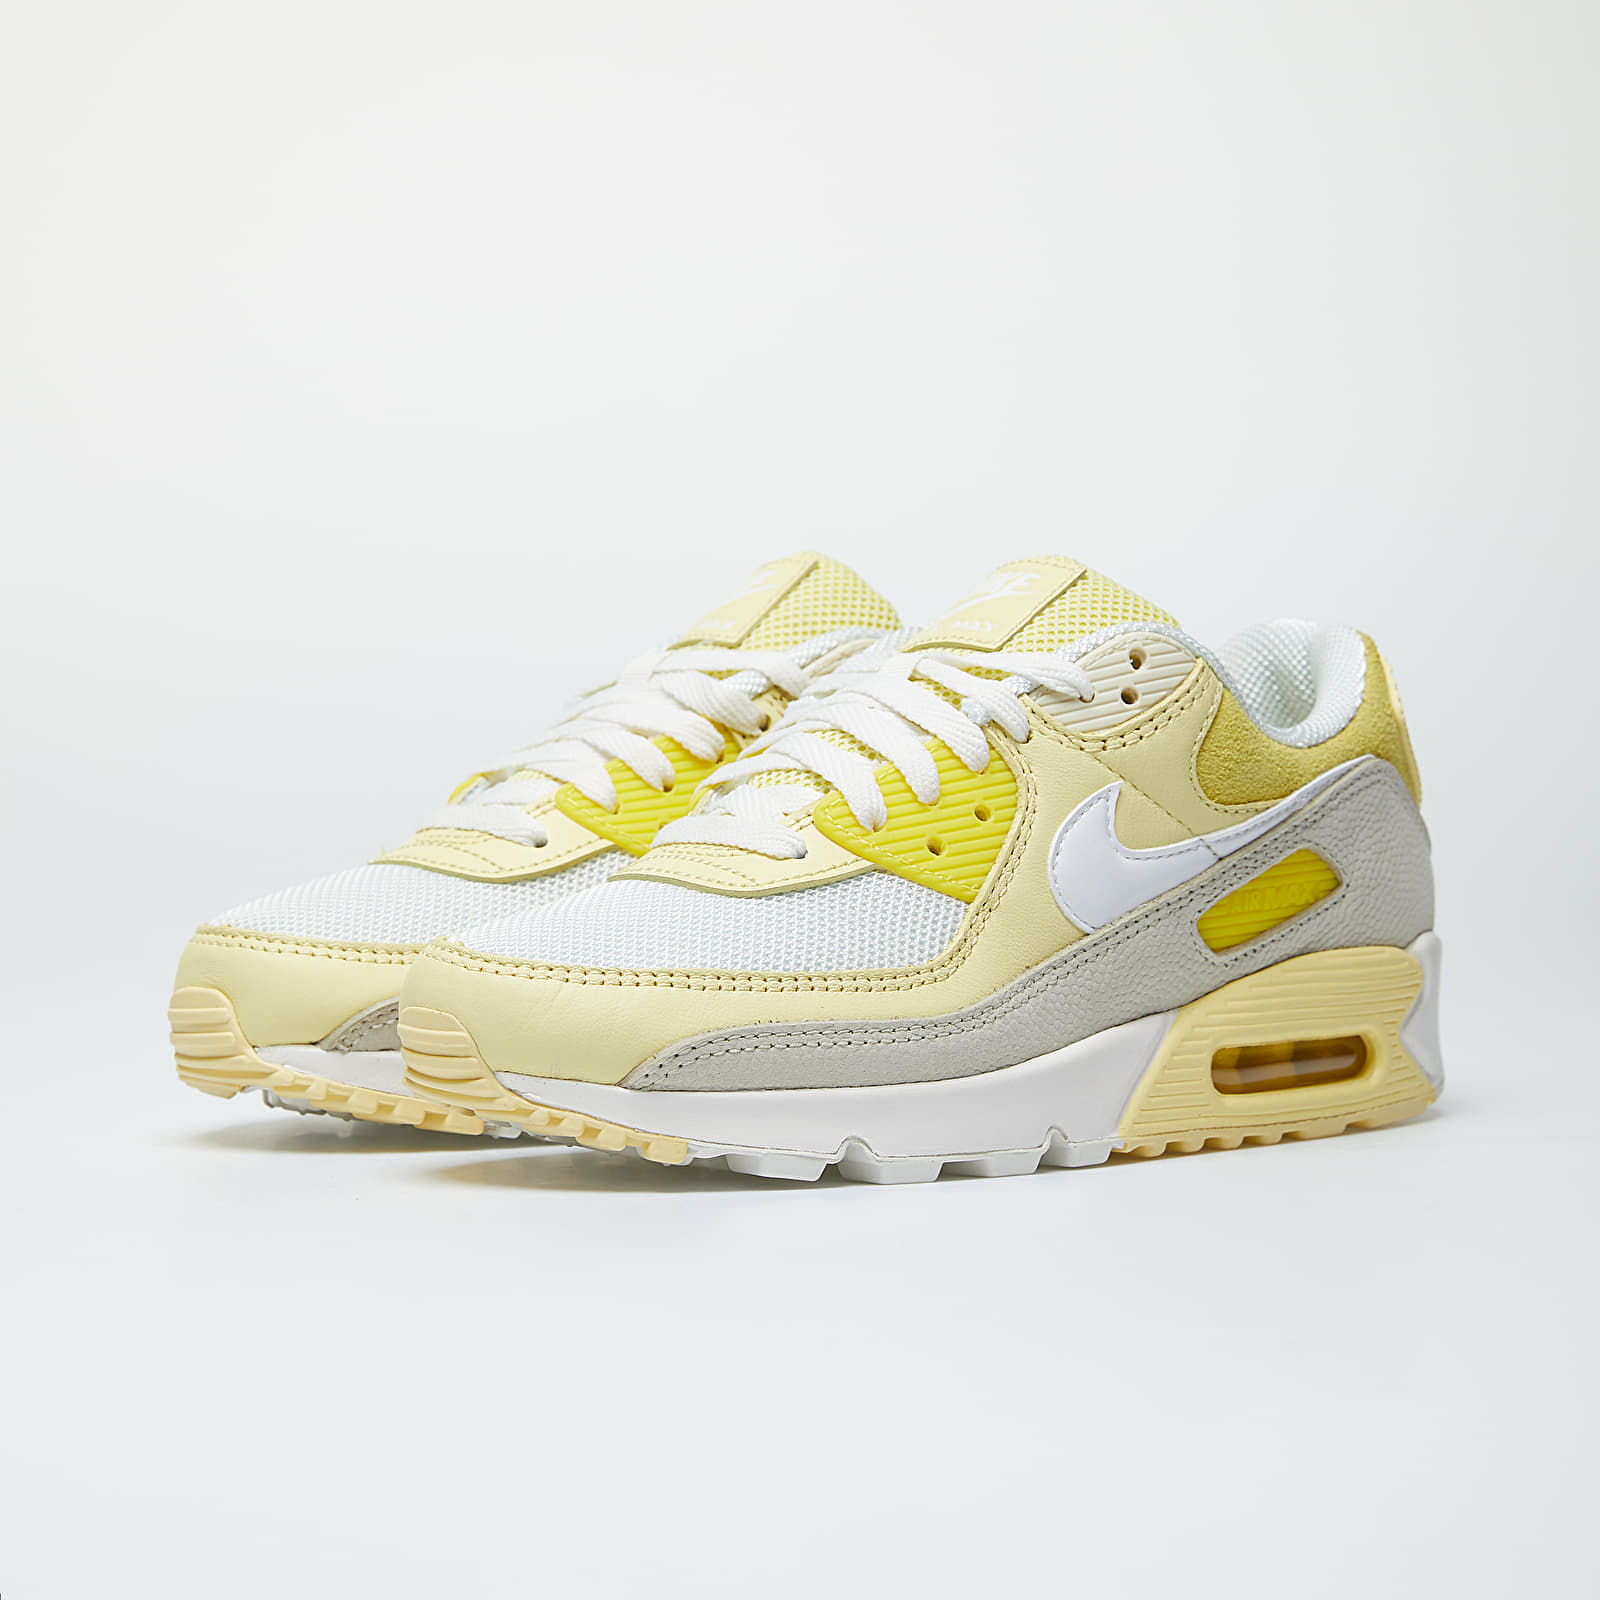 Nike Wmns Air Max 90 Opti Yellow White Fossil Bicycle Yellow | Footshop